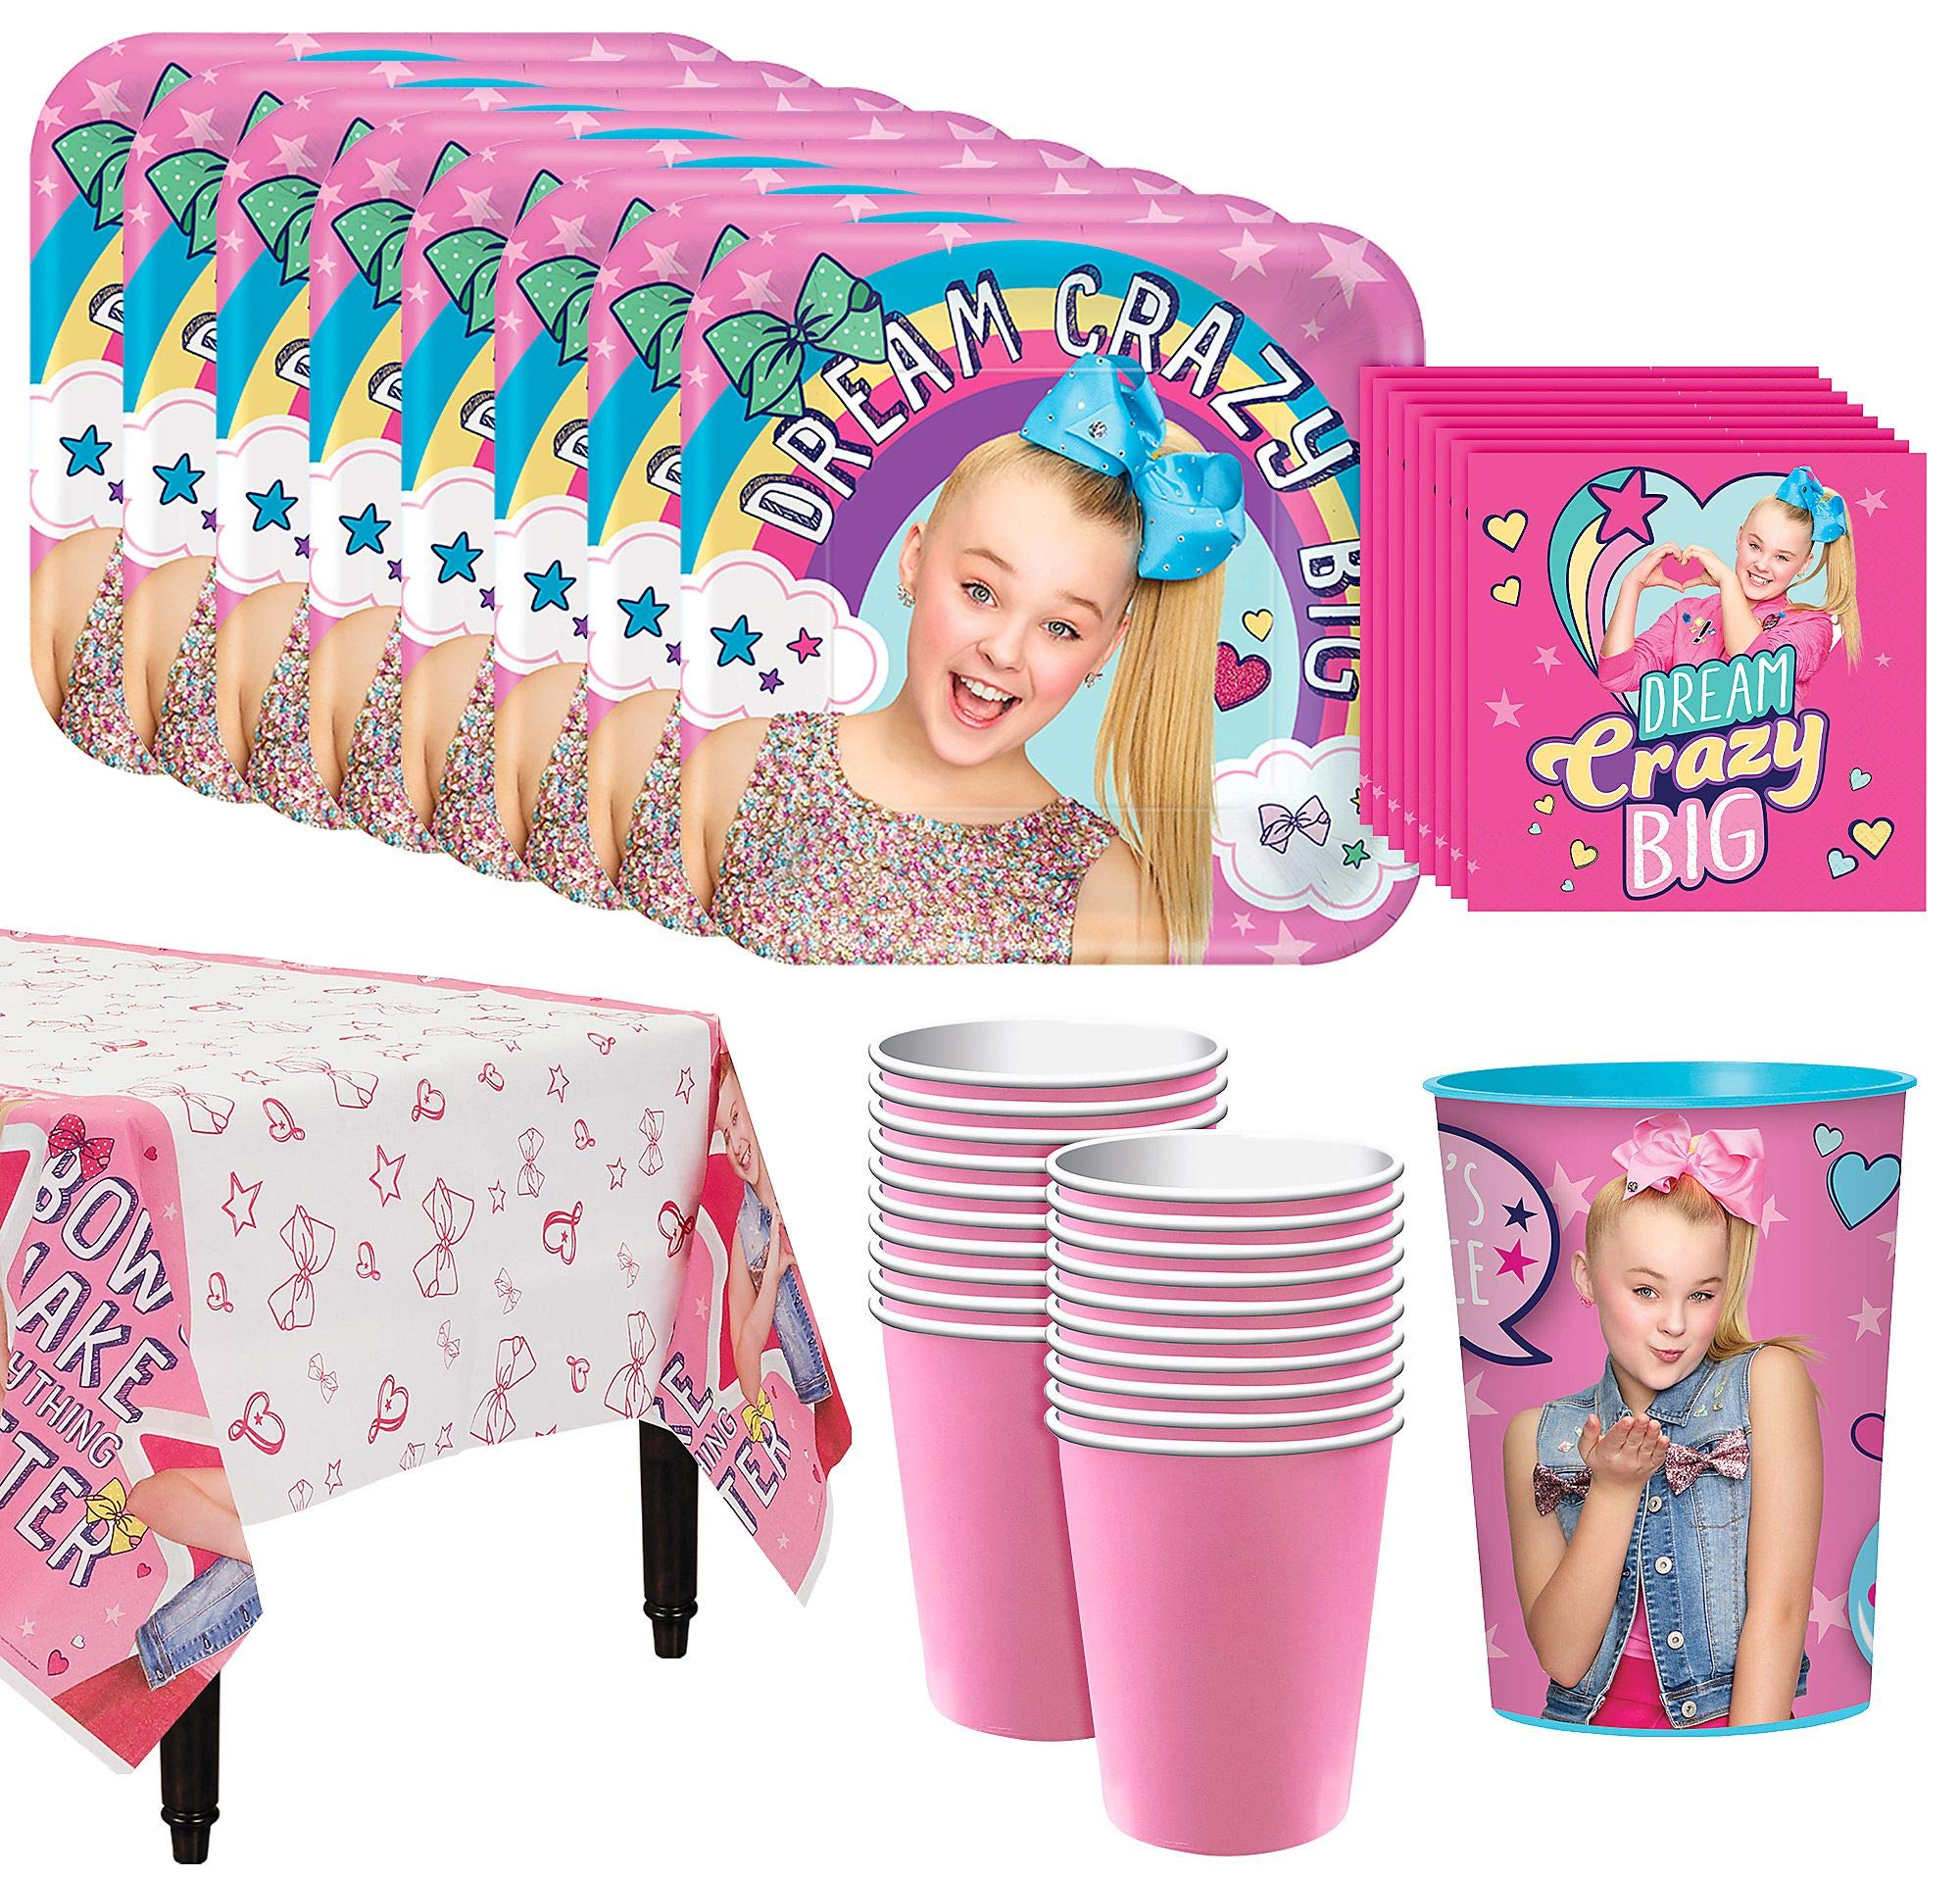 JoJo Siwa Basic Tableware Kit for 16 Guests, 54 Pieces, Includes Table Cover, Plates, Napkins, Cups, and a Favor Cup by Party City